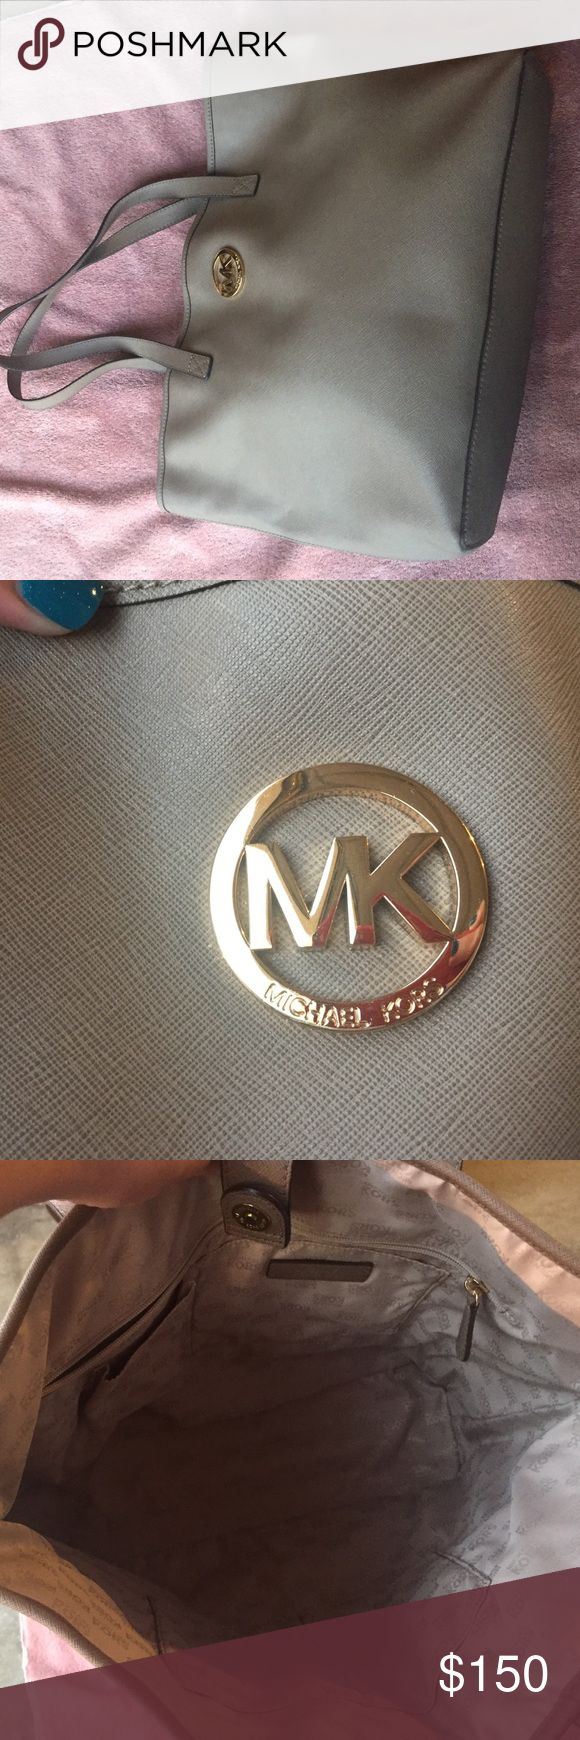 Michael Kors Jet Set tote large Michael Kors Jet Set tote large. Great condition inside and out. Perfect for Fall. Bags Totes